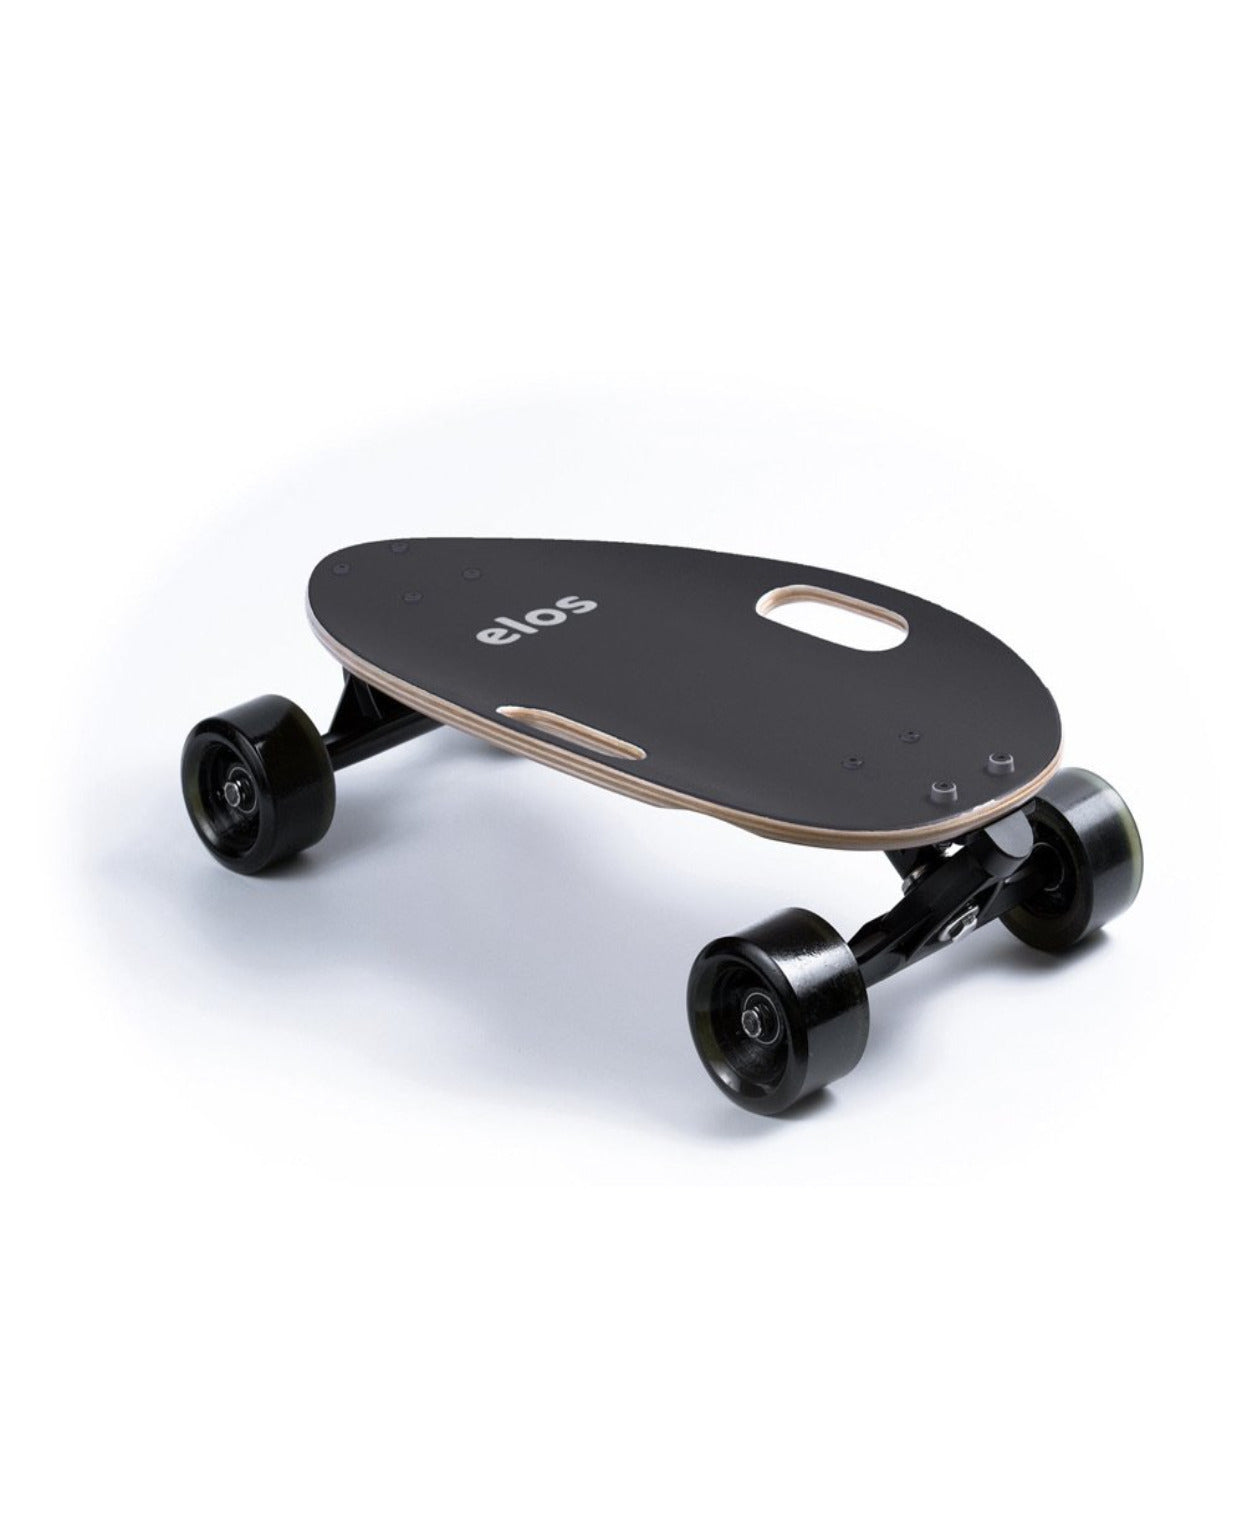 Elos lightweight skateboard charcoal black LAST 1 IN STOCK!